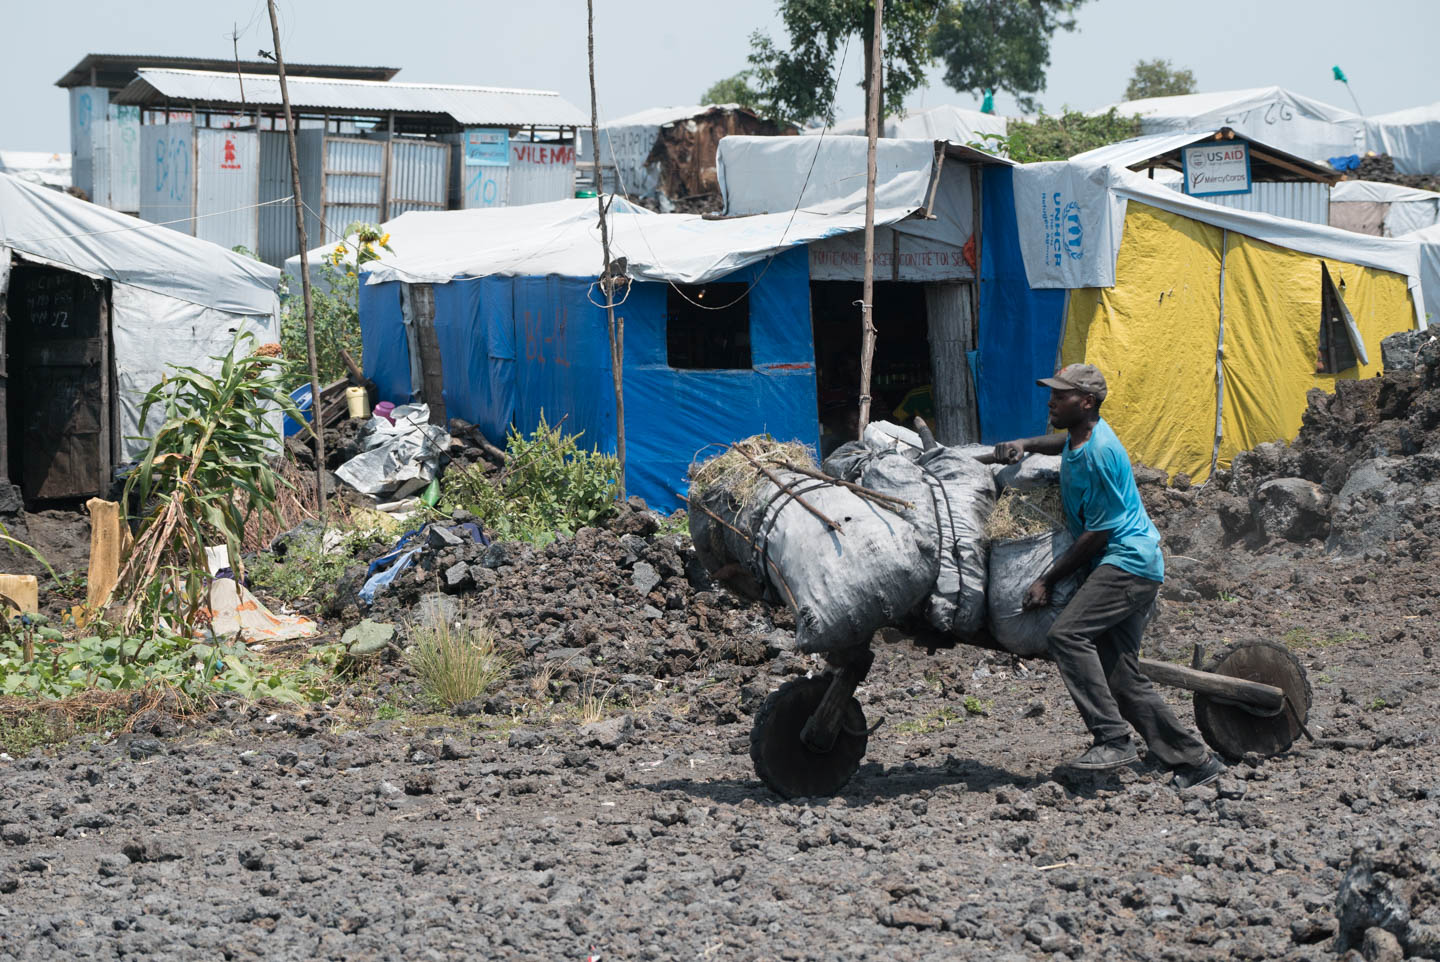 A villager uses a home-made, two wheel cart to move supplies in the refugee camp outside of Goma.